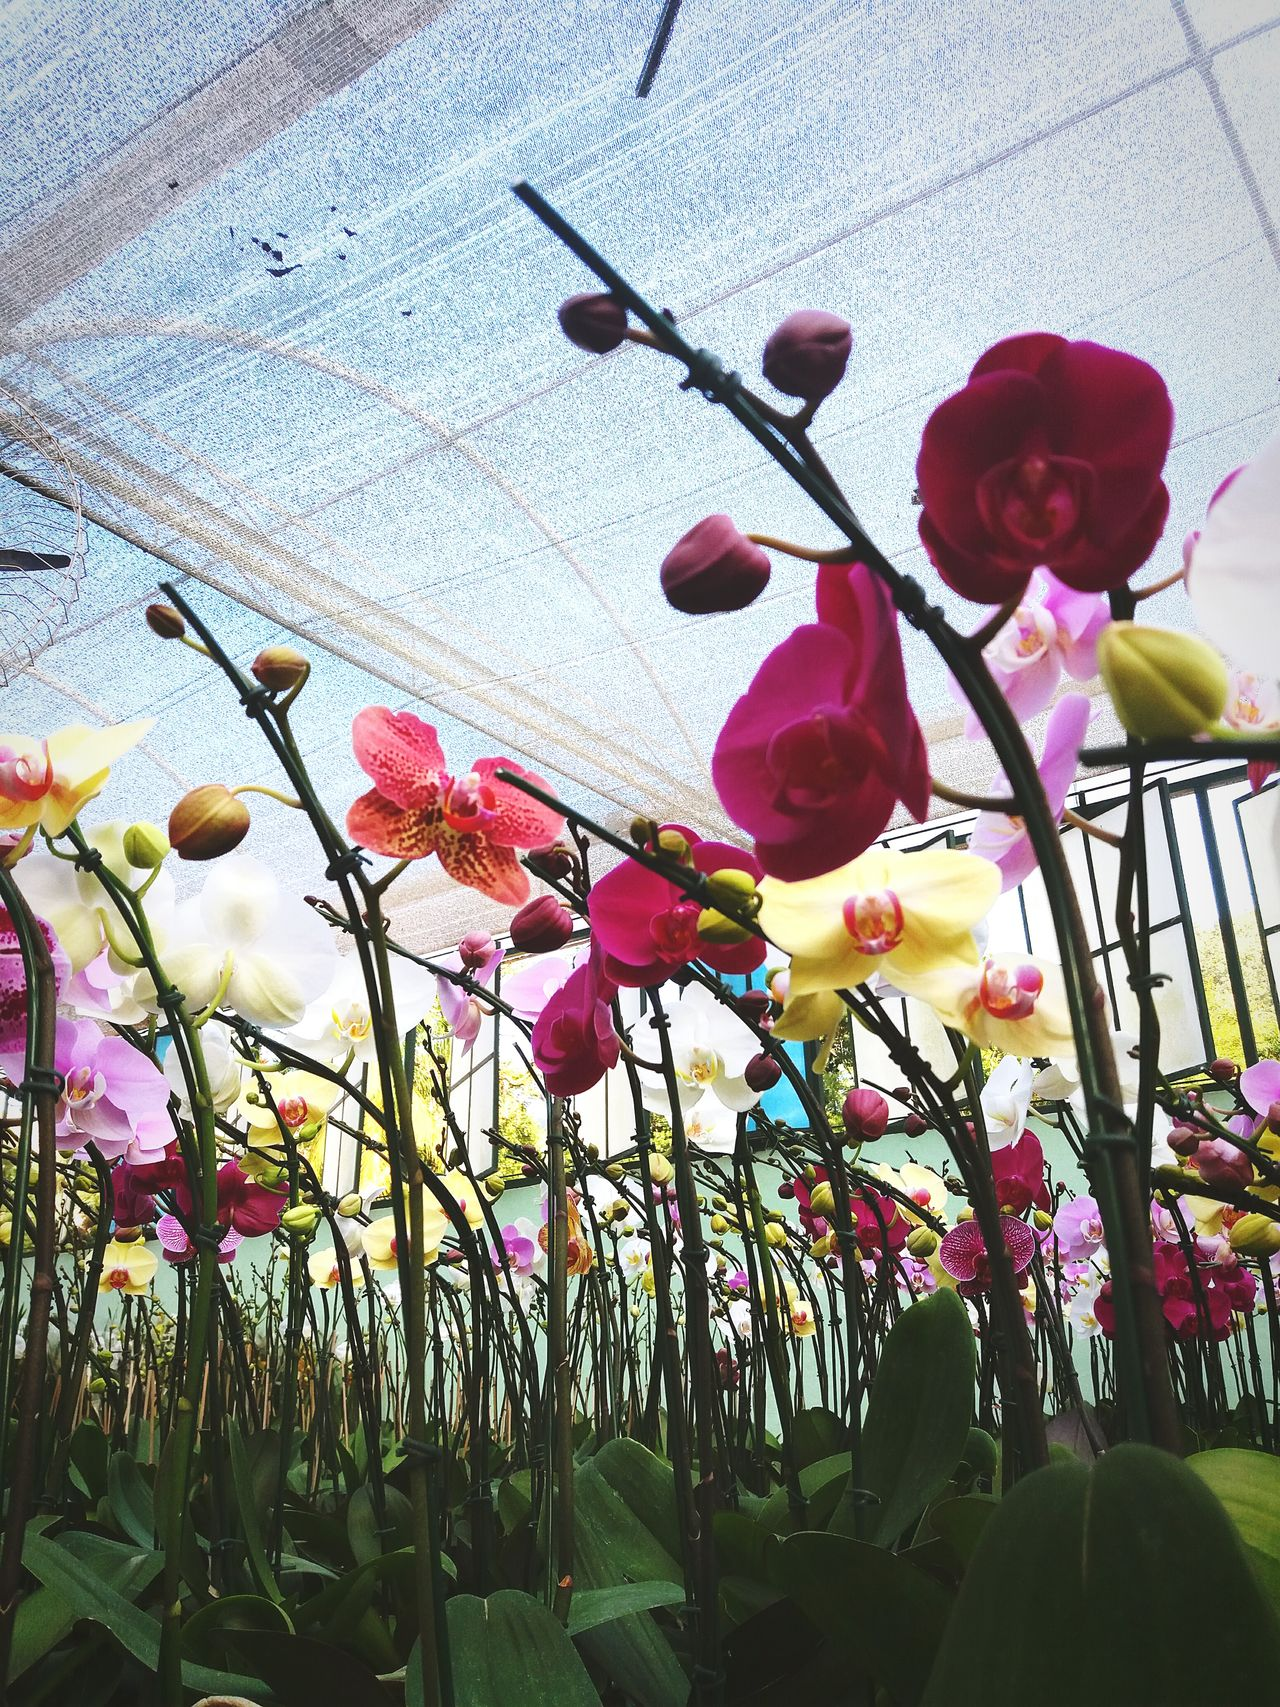 Growth Low Angle View No People Day Nature Outdoors Tree Flower Close-up Beauty In Nature Sky Orchidea Springtime Orchid Blooming Multi Colored Greenhouse Fragility Orchid Flower Beauty In Nature Orchids Collection Orchids In Bloom Orchidslover Flowerbed Orchids